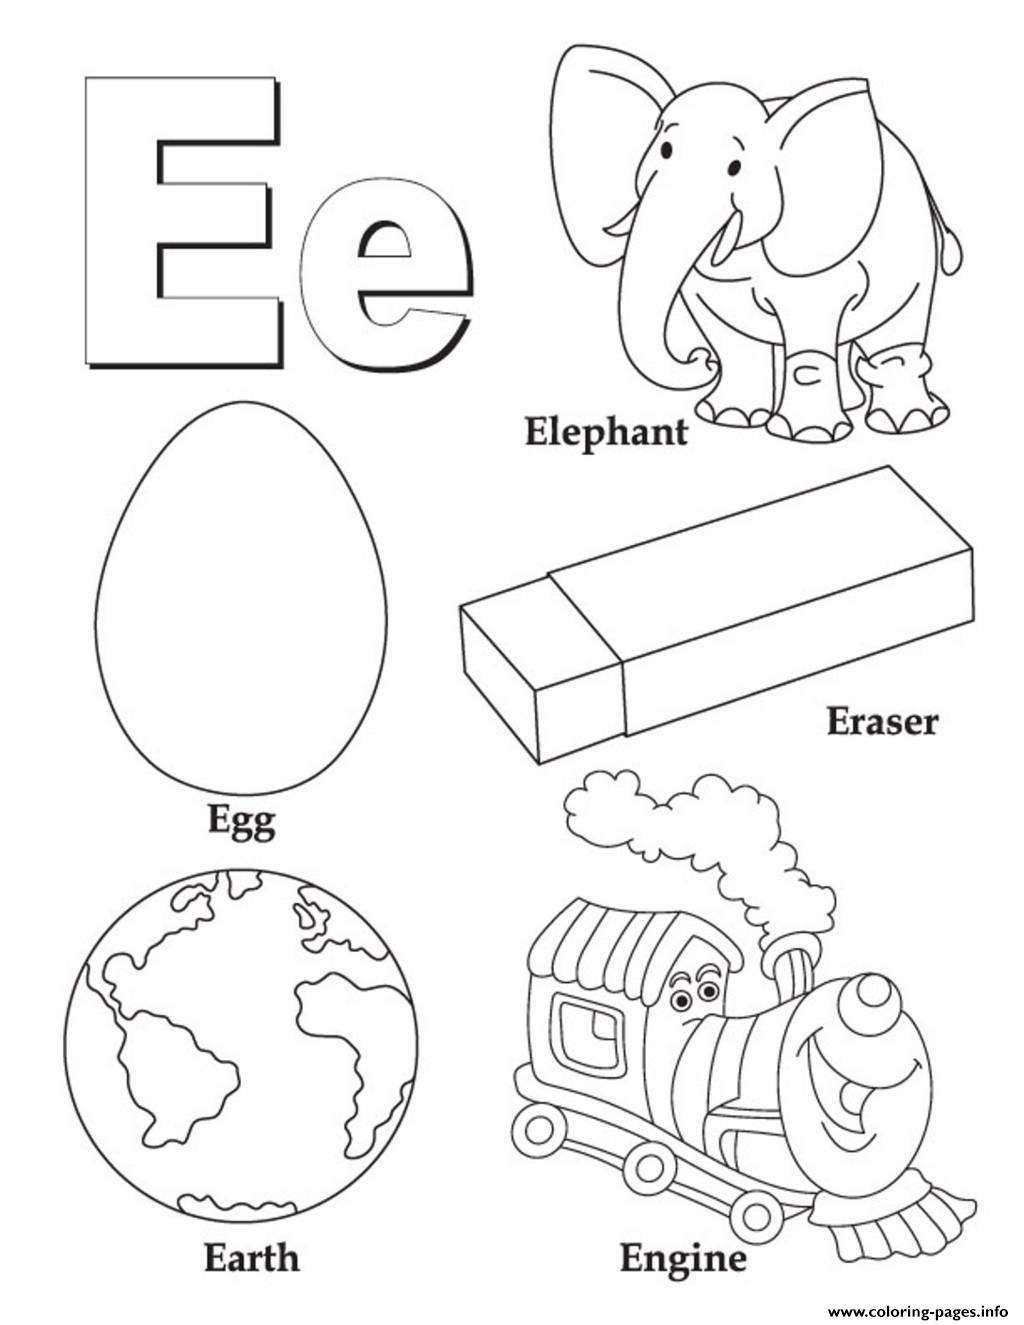 free alphabet coloring pages - alphabet s free words for ea3a4 coloring pages printable